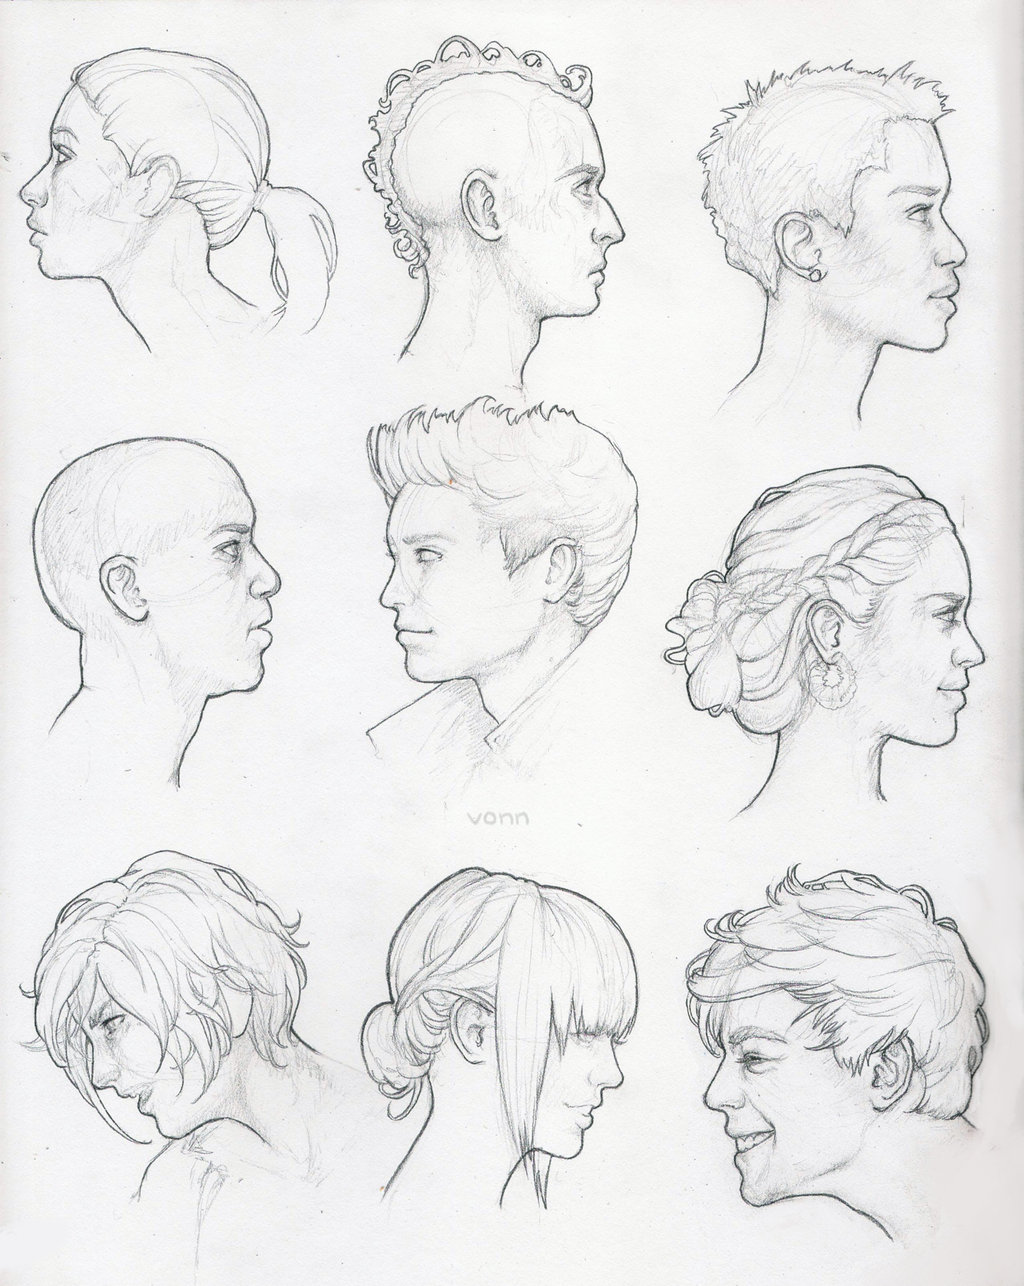 1024x1286 Profile Study Sketches By Tvonn9